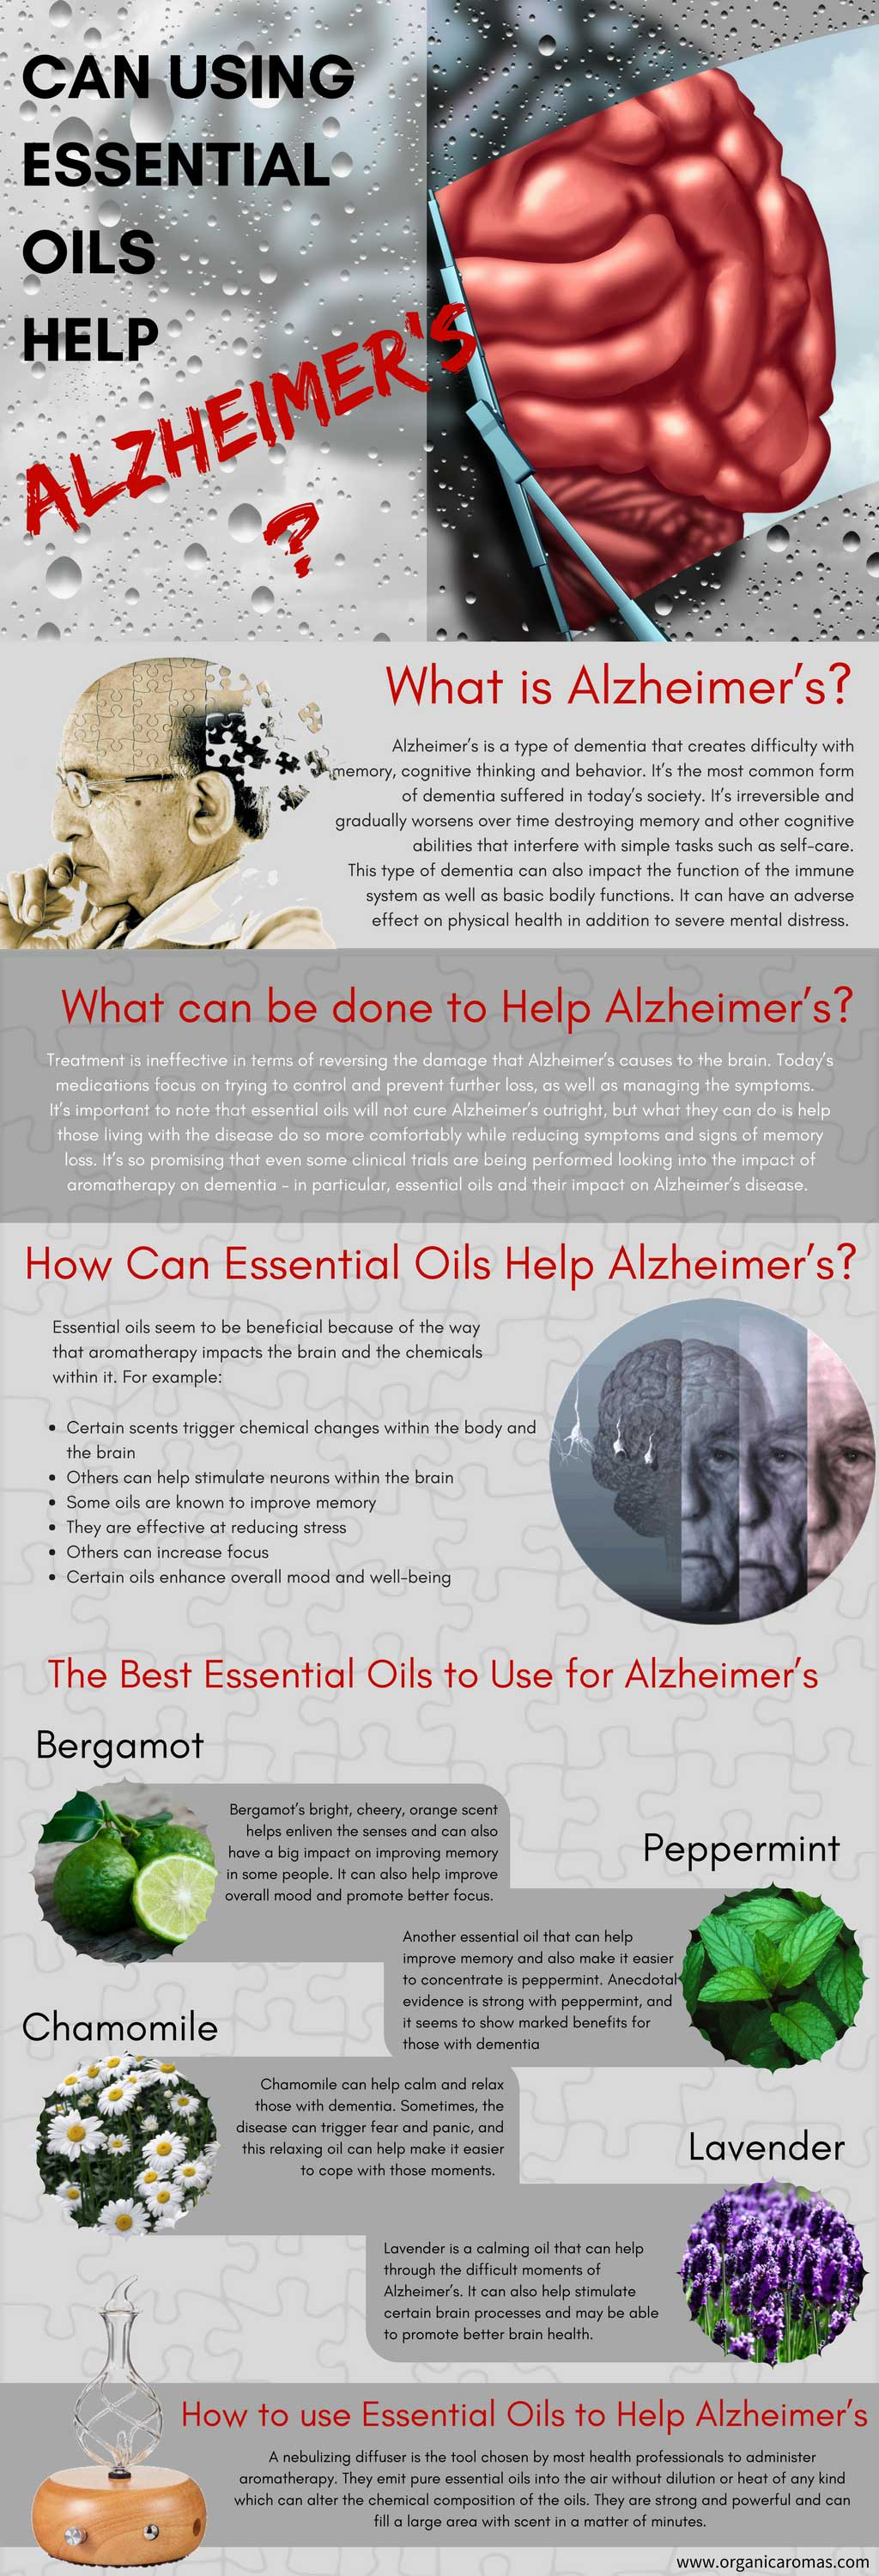 Can Essential Oils Help Alzheimer's - Info-graphic